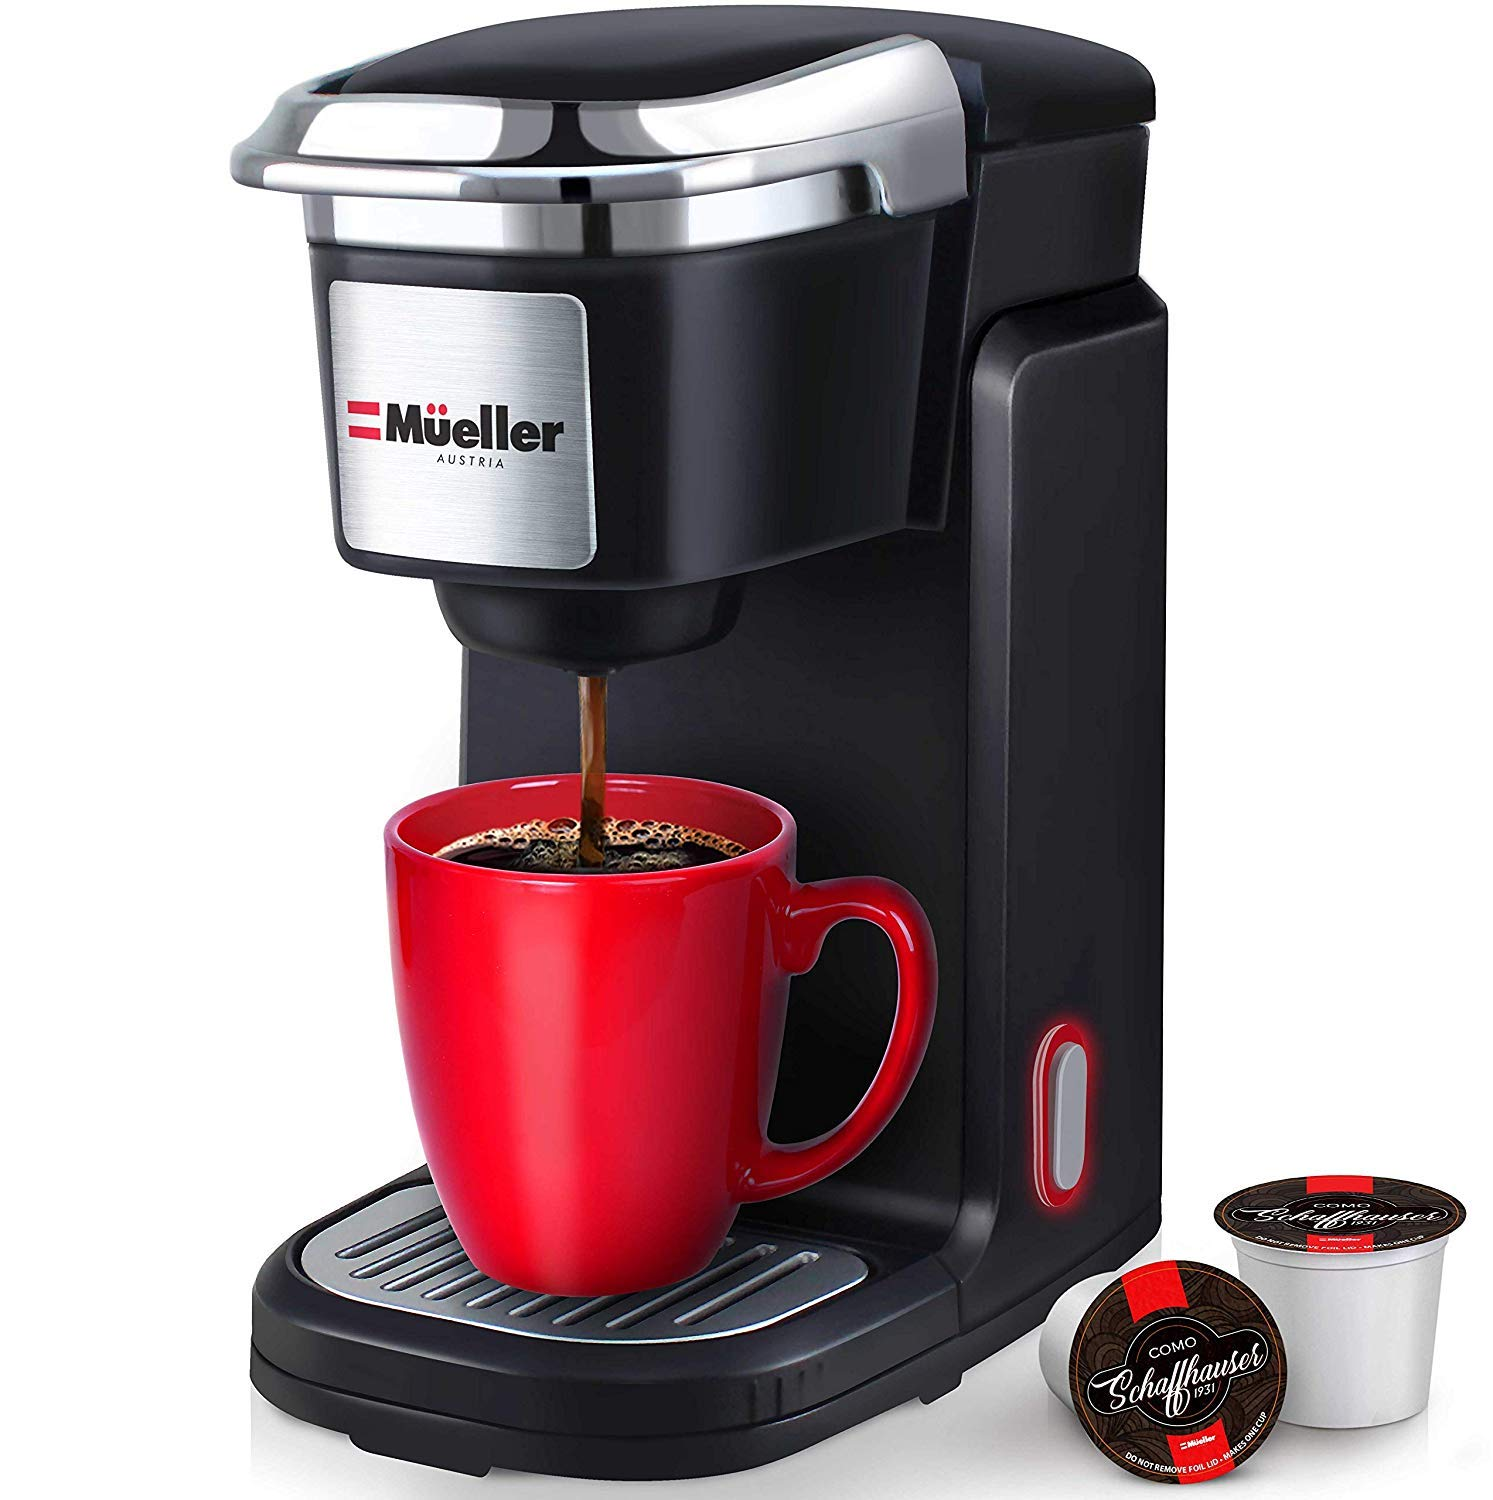 Mueller Barista Pro Single Serve Brewer 10oz Coffee Maker Machine with One Button Operation, Auto Shut-Off, Compatible with All Coffee Capsules